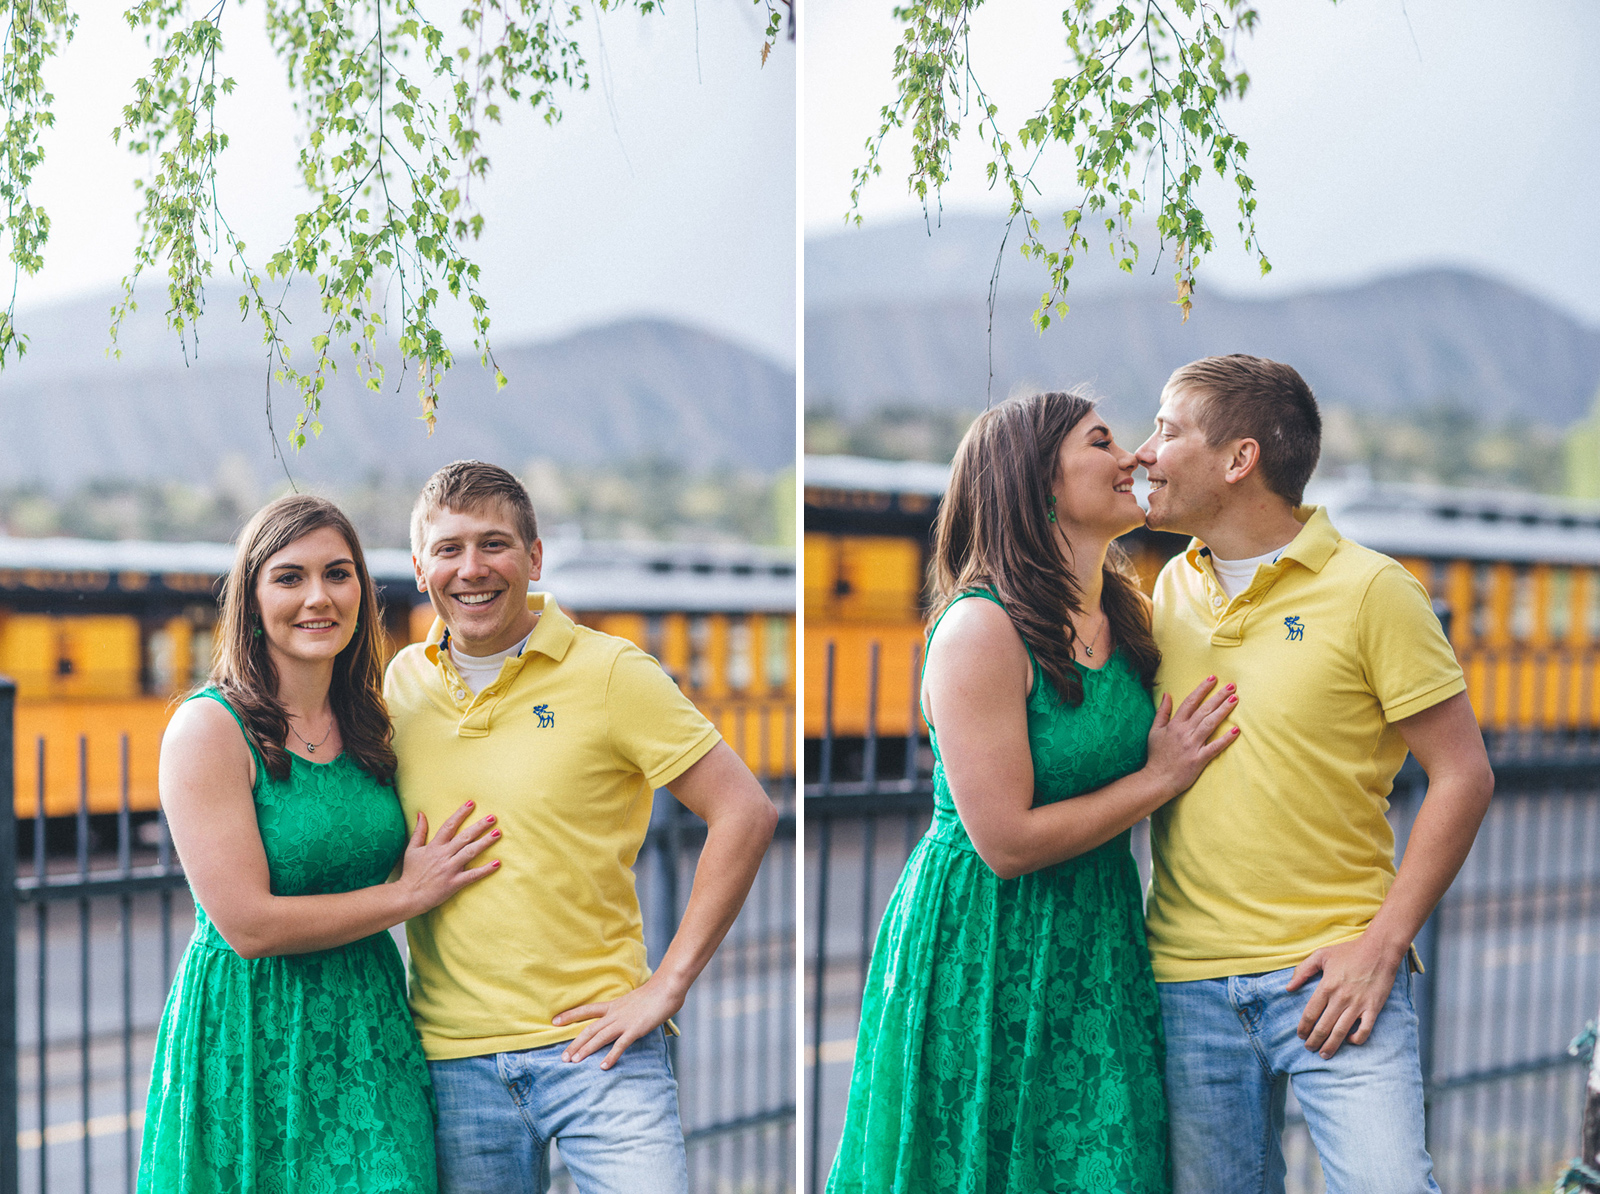 057-engagement-trees-fun-wedding-train-laughing-durango-colorado-farmington-candid-new-mexico